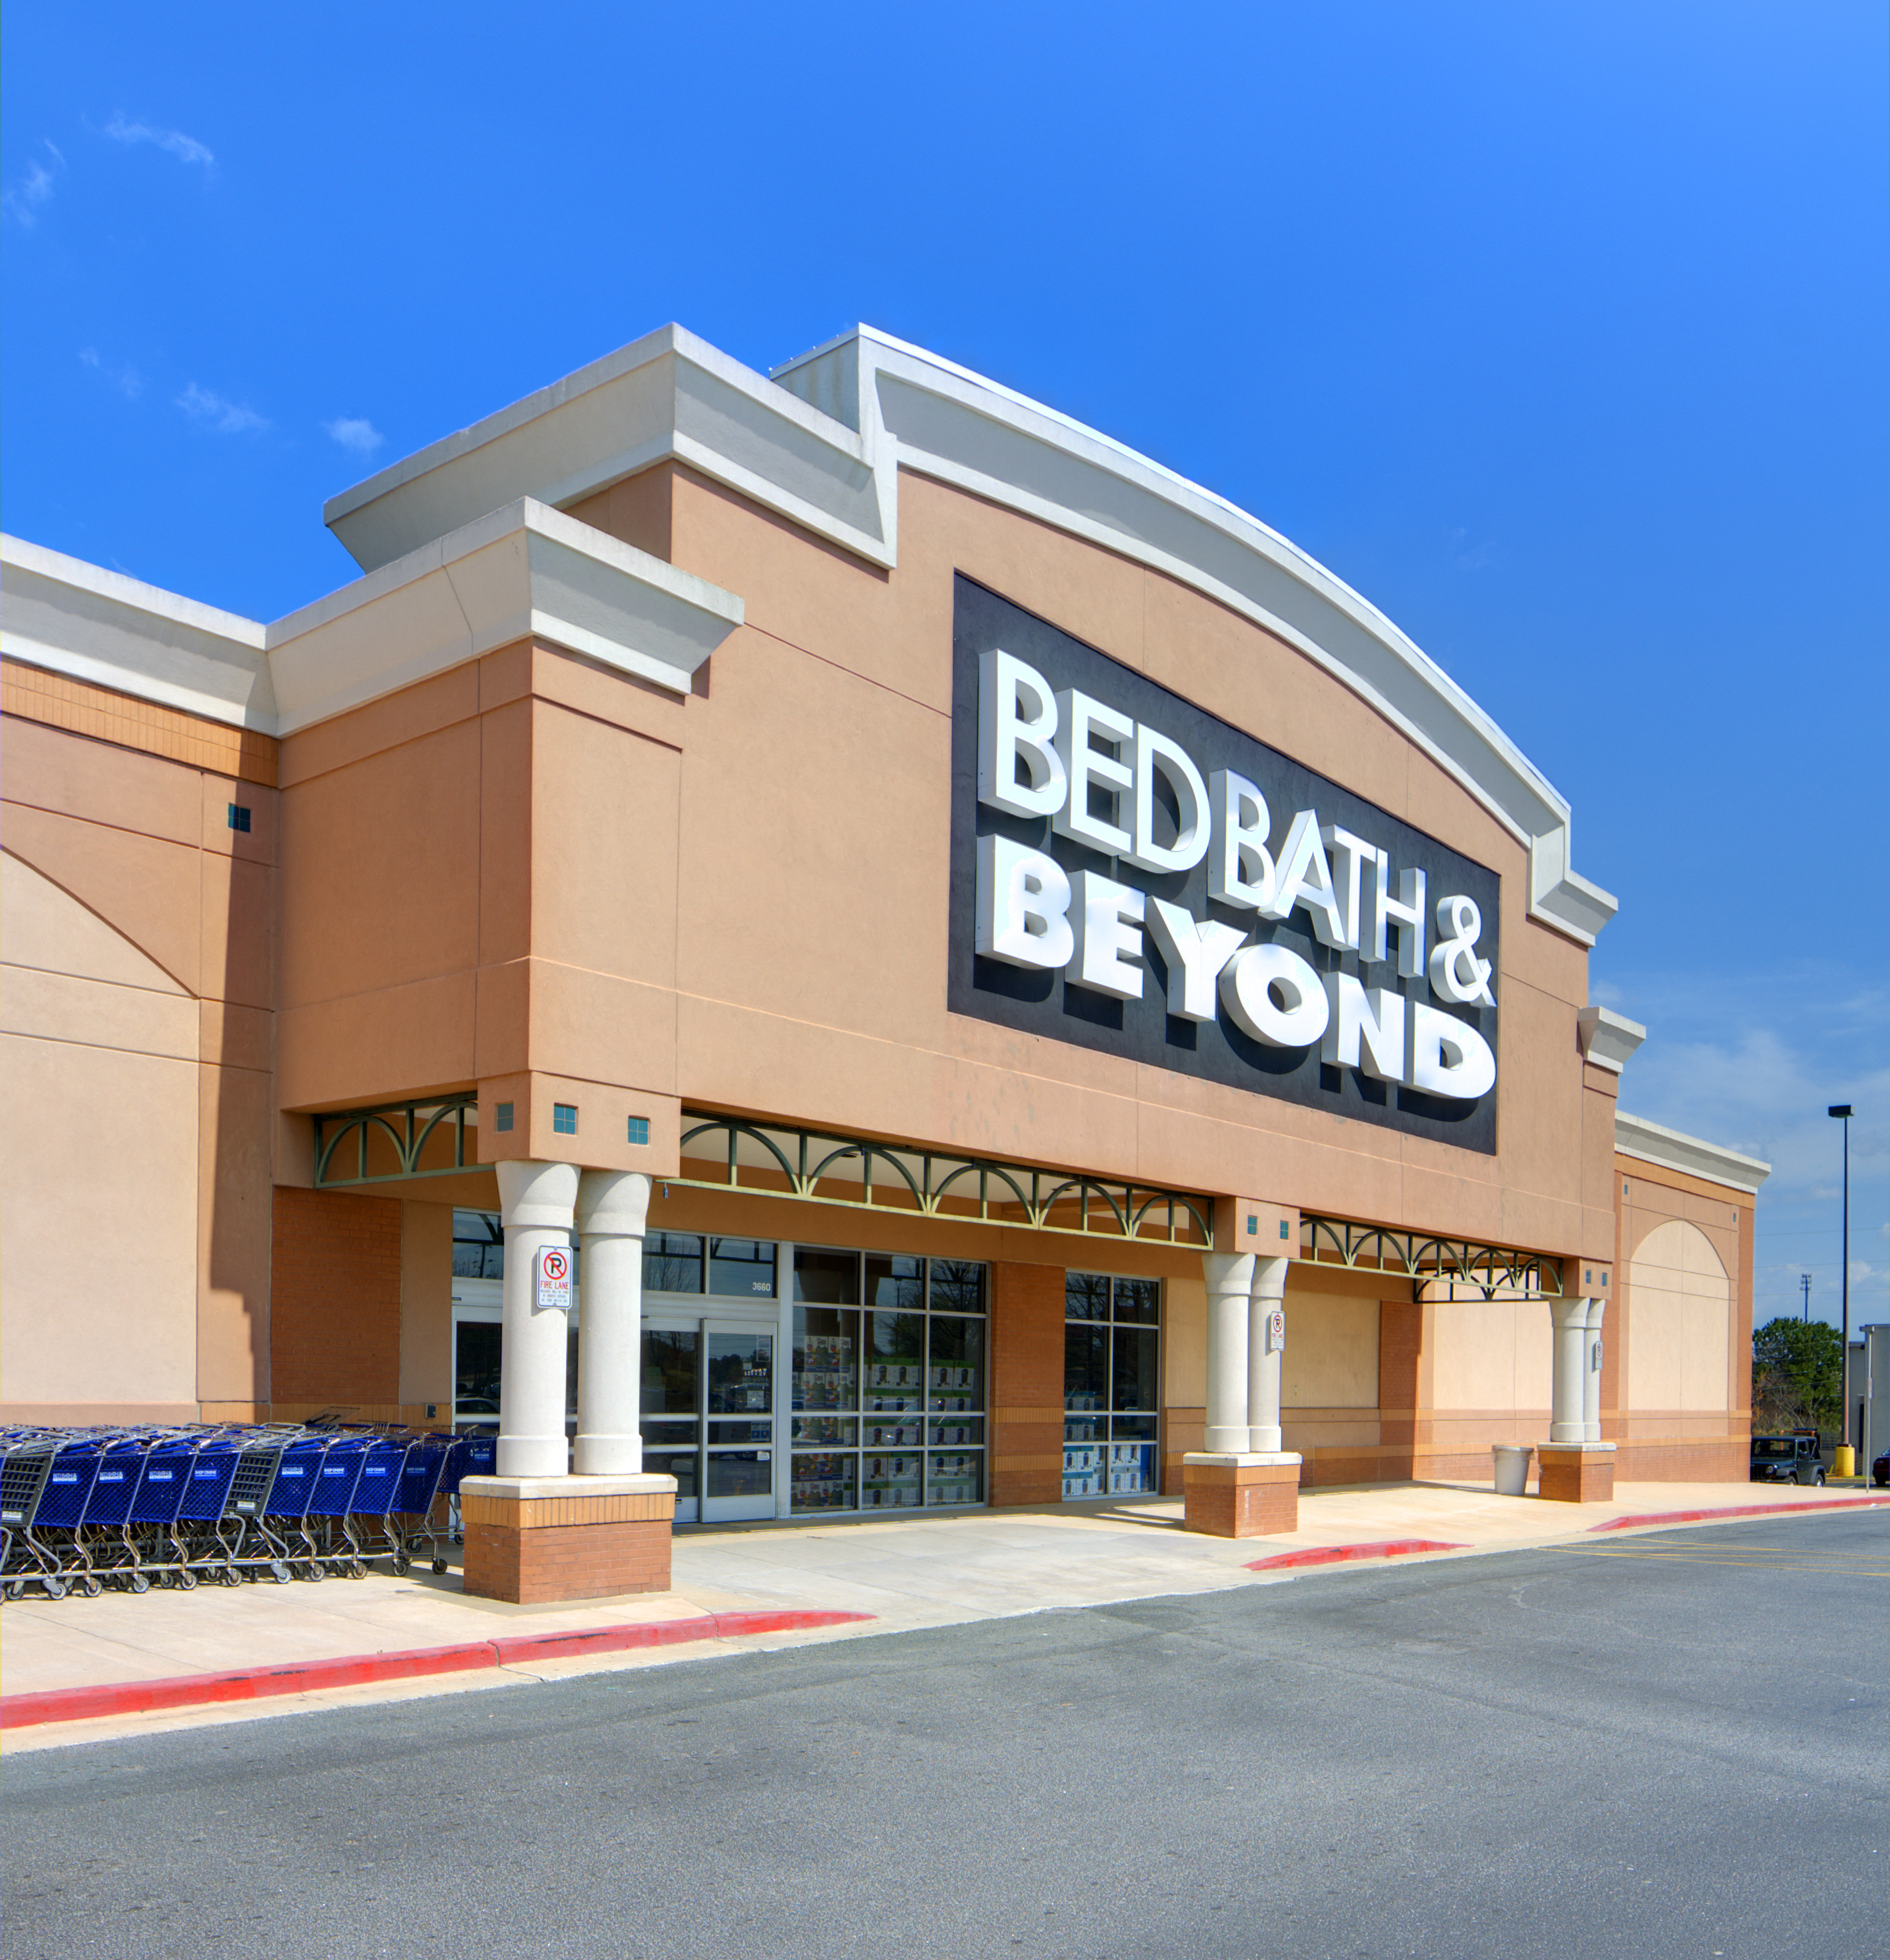 Athens, Georgia, USA - March 15, 2012: The mid-ranged domestic merchandiser Bed Bath & beyond is a fortune 500 company formed in 1971 specializing in bed and bath products.